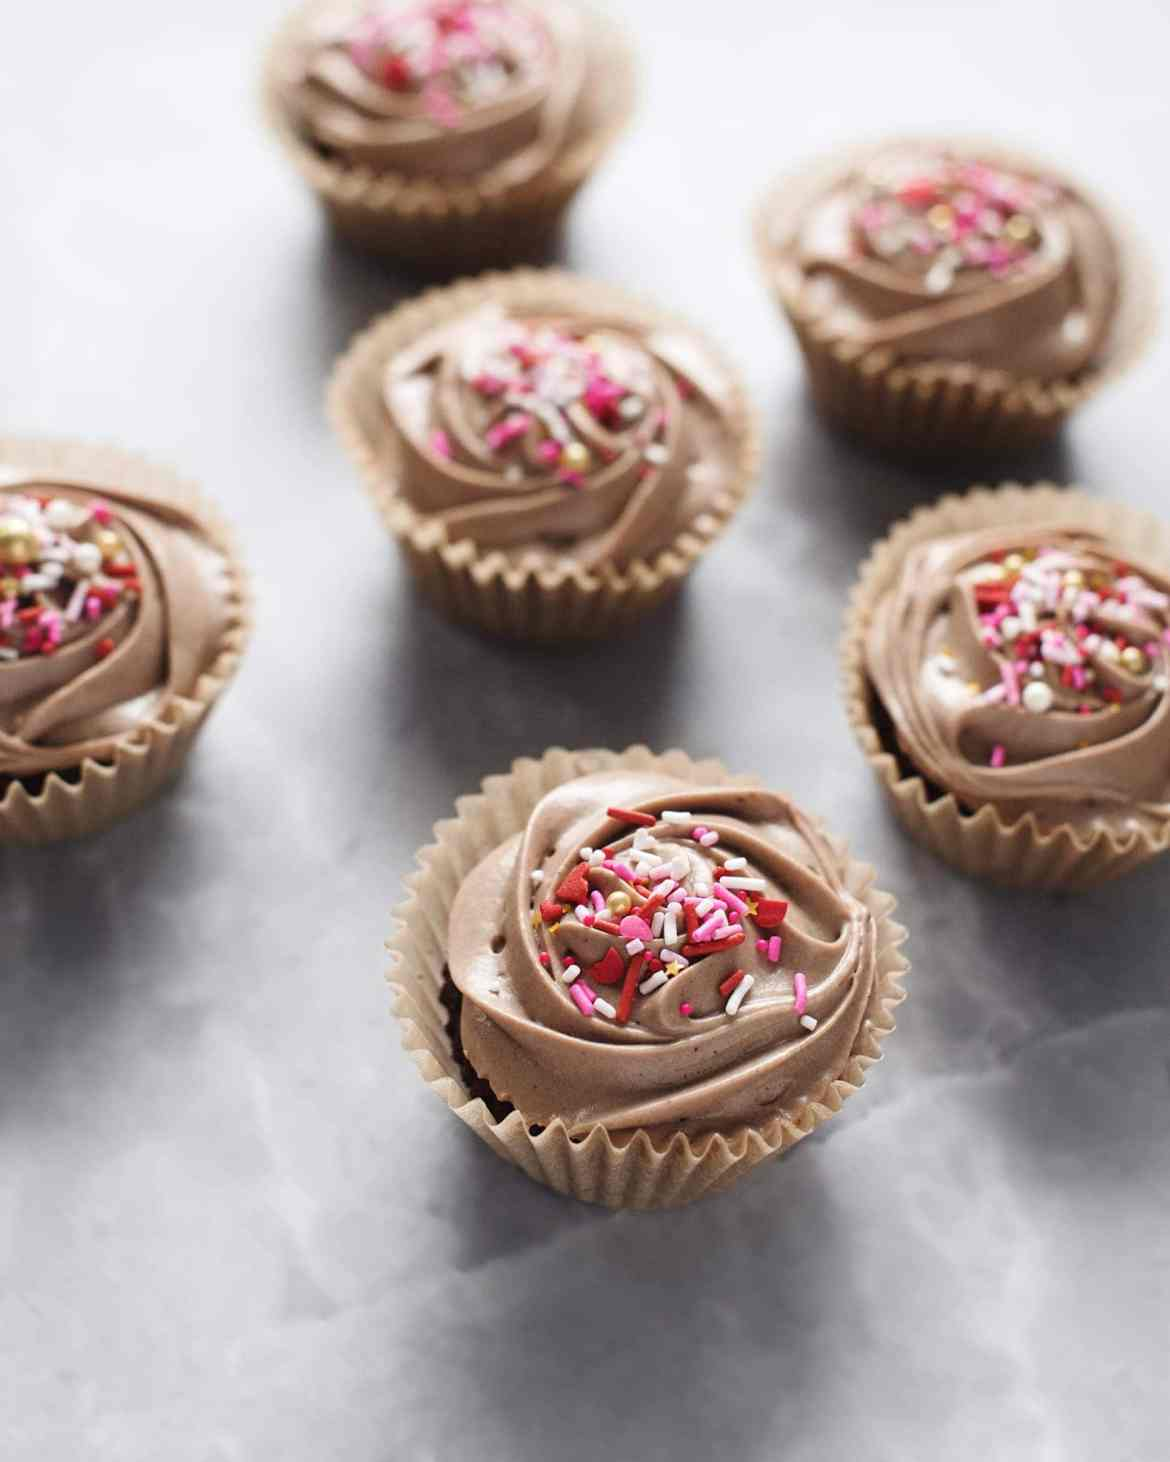 Double chocolate cupcakes with pink sprinkles